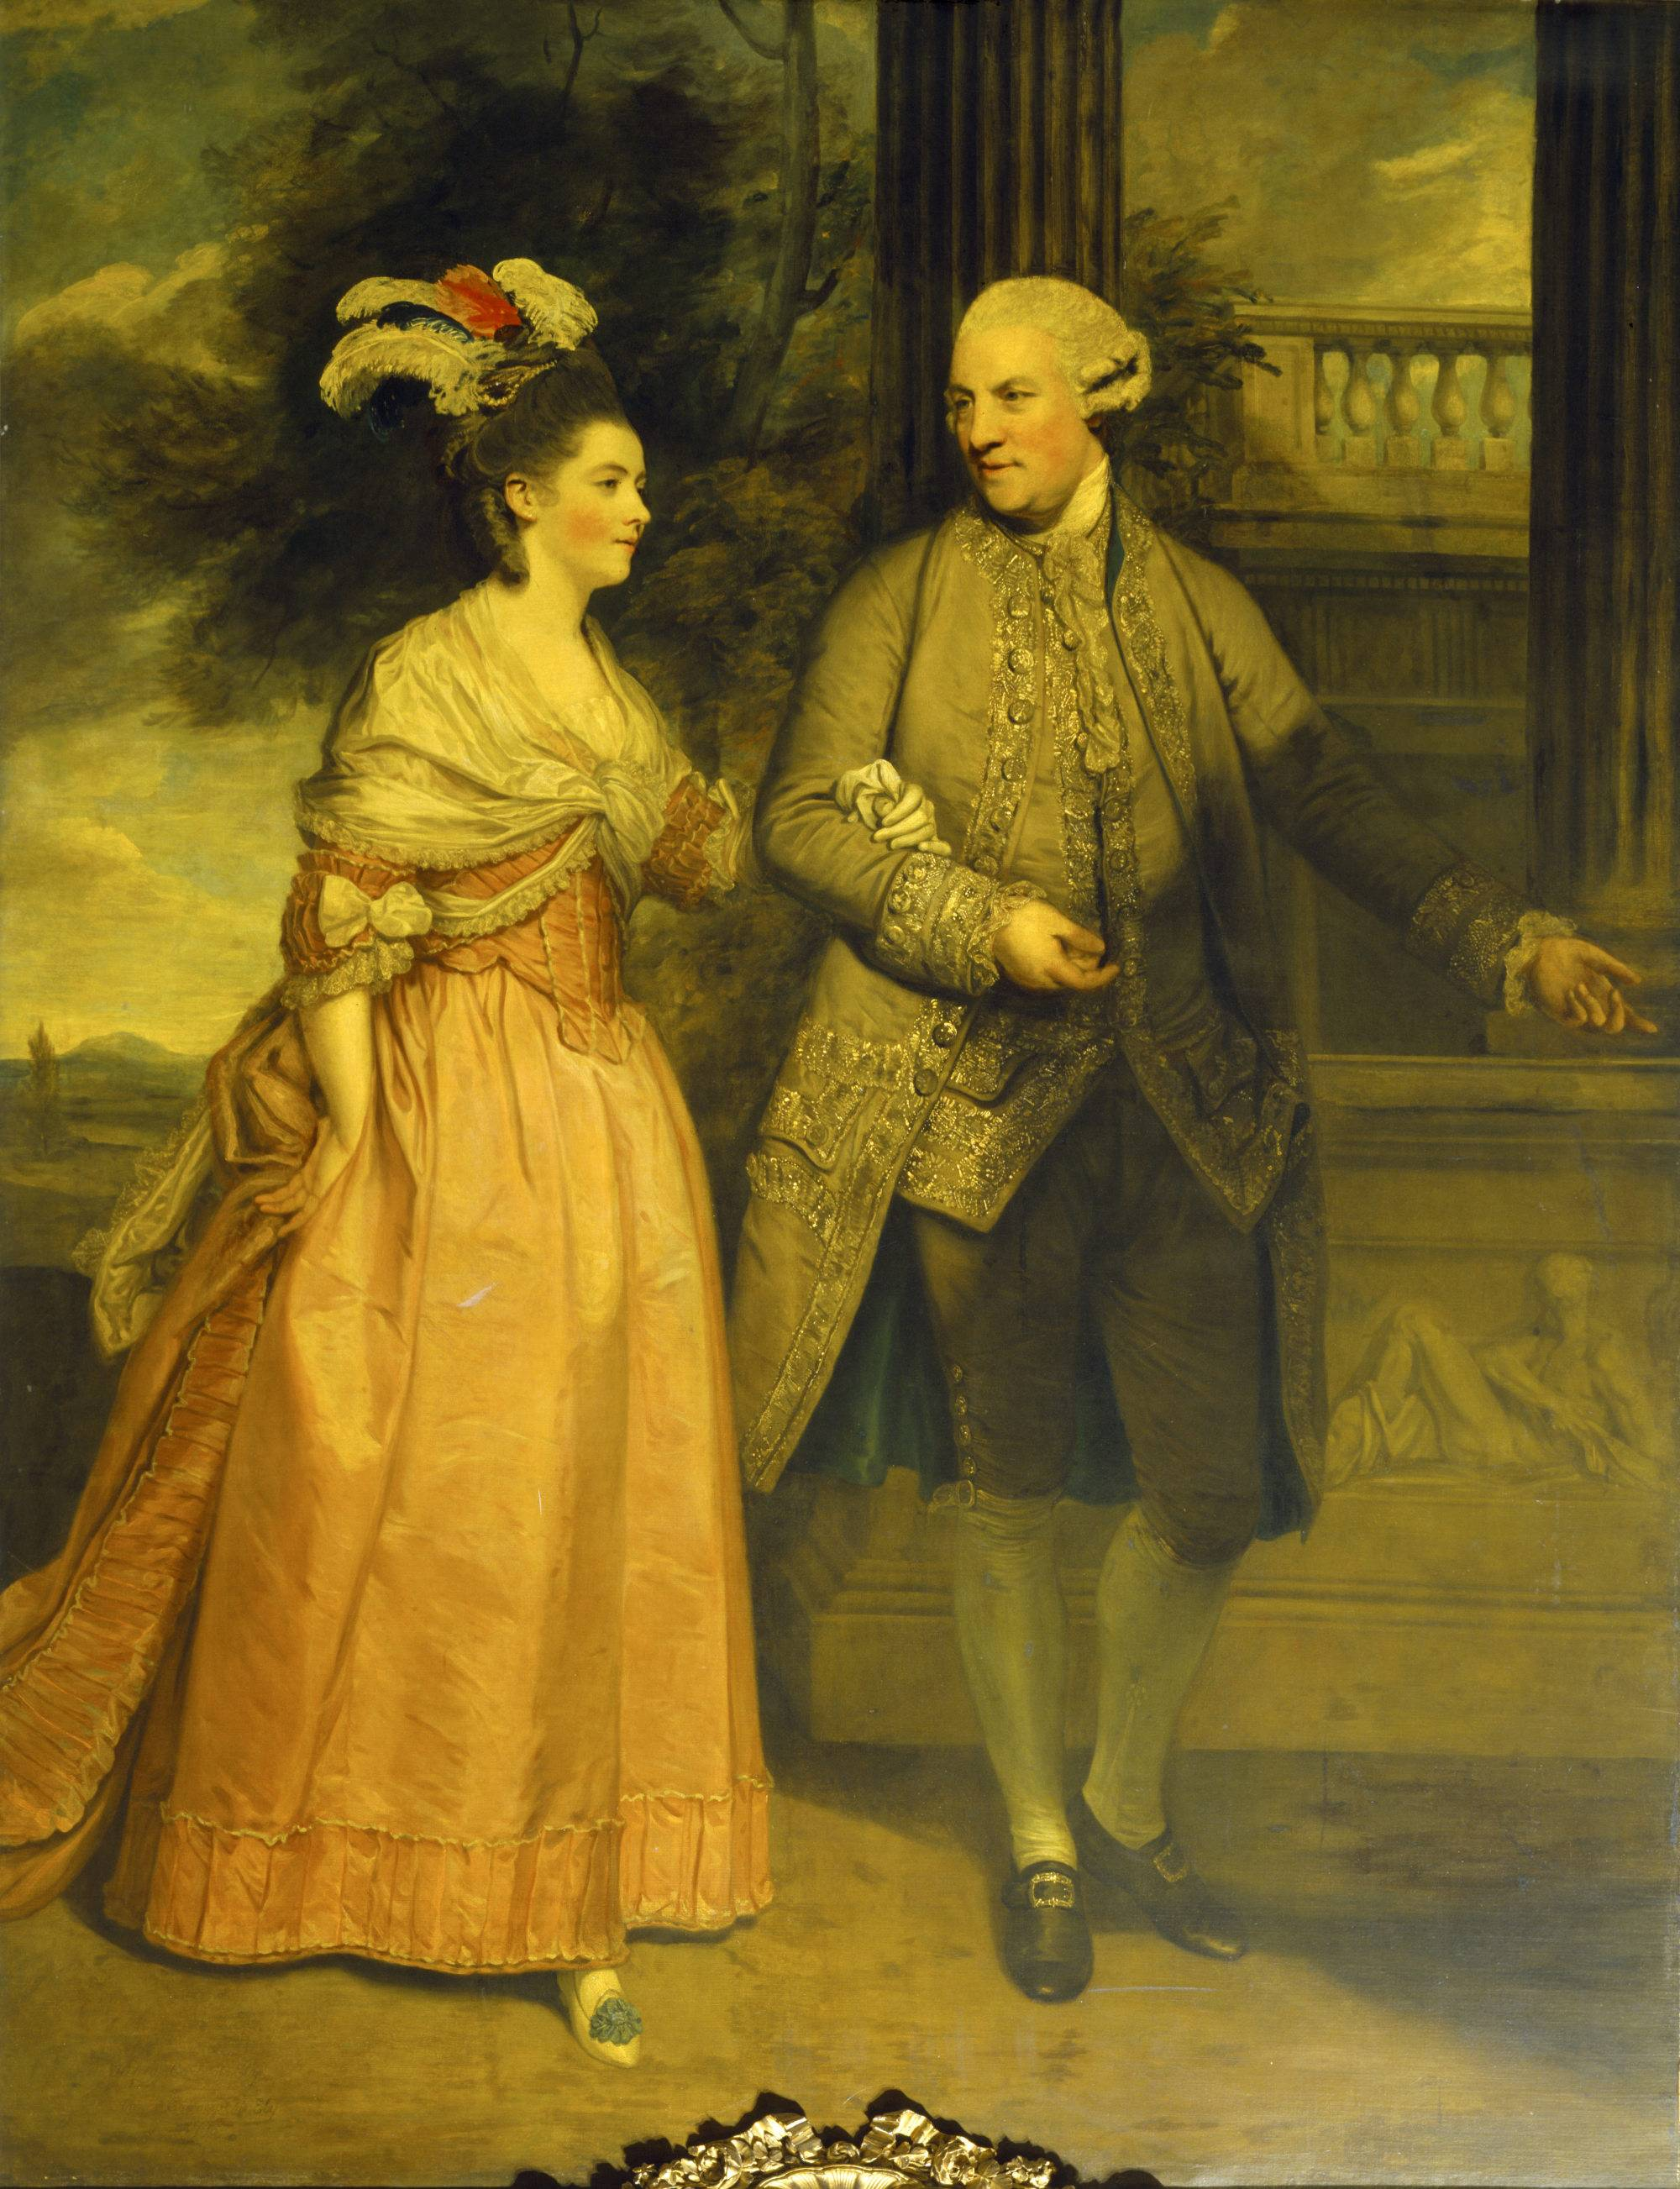 Henry Loftus, 1st Earl of Ely (1709-1783) and his wife Frances Monroe, Countess of Ely (d.1821), in c. 1775, by Sir Joshua Reynold. Oil painting on canvas. © National Trust/Angelo Horne.